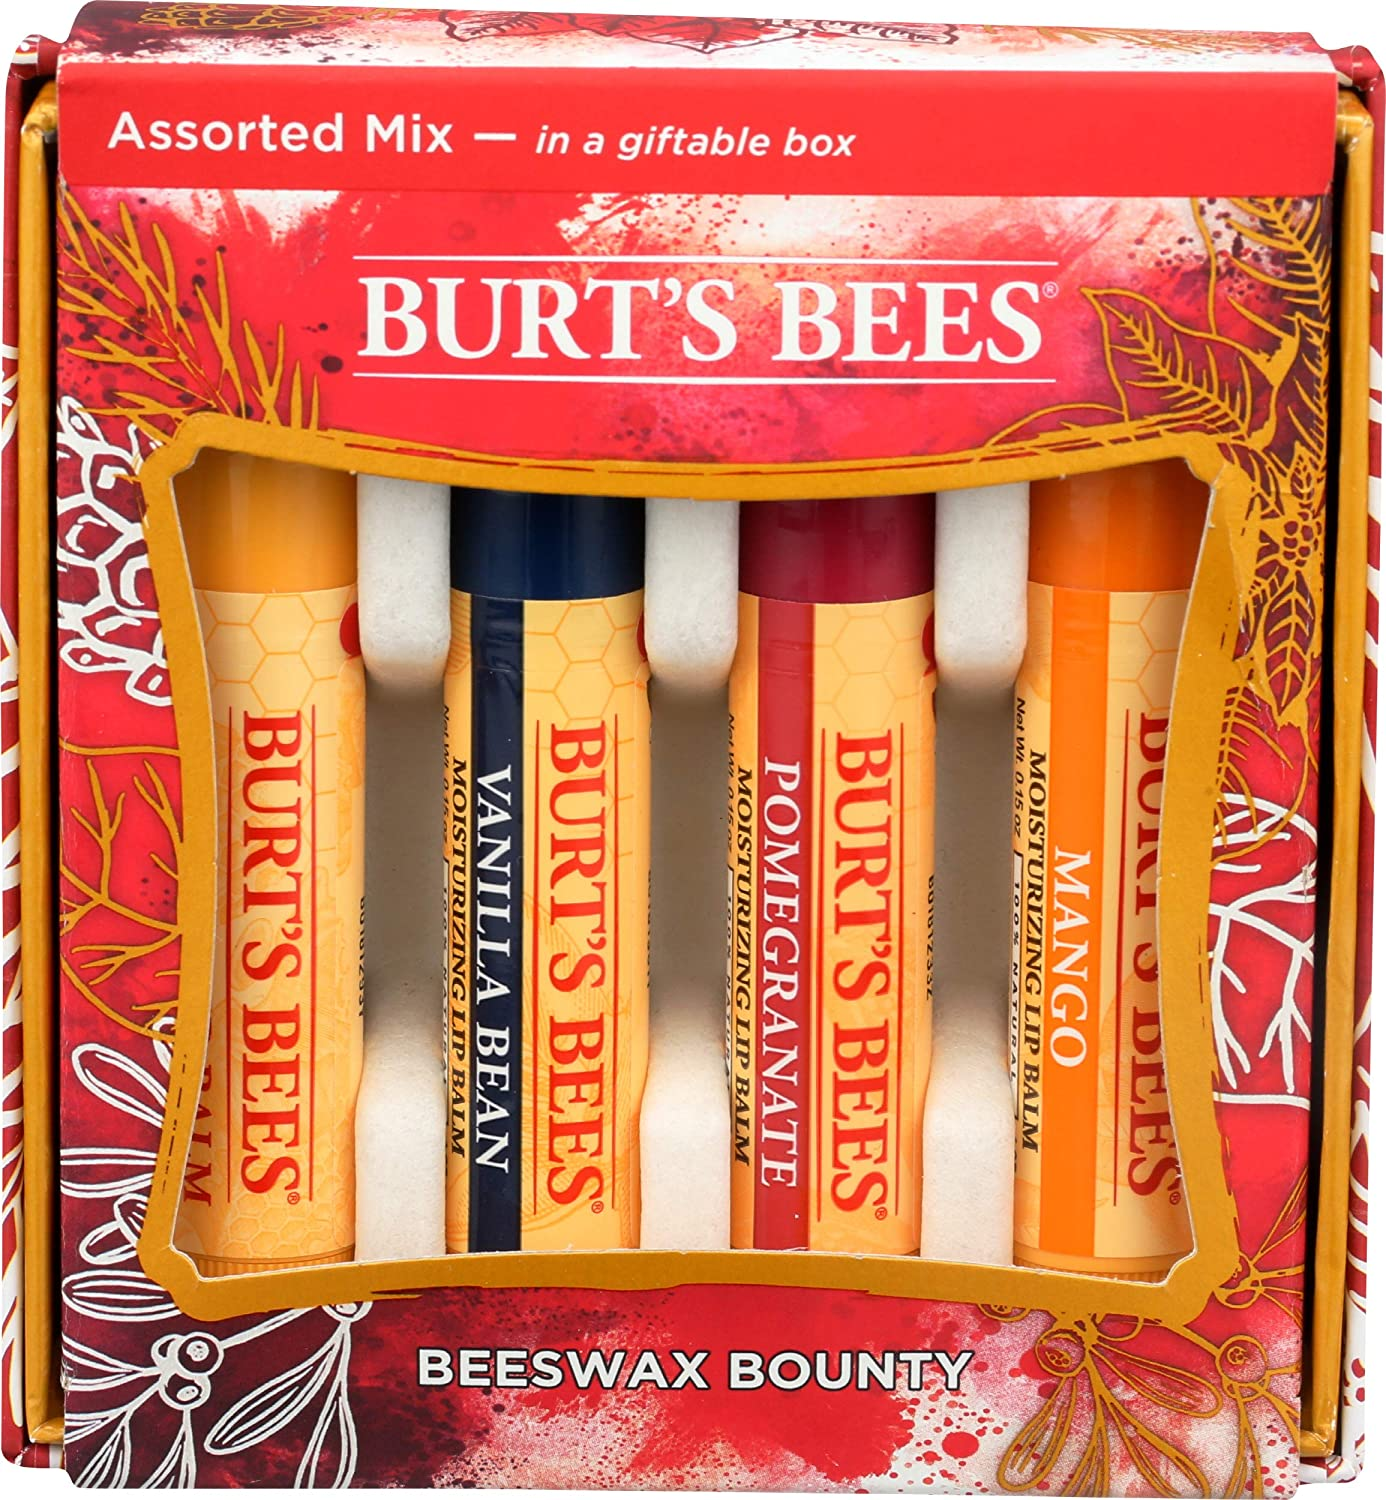 Burts Bees, Lip Balm Gift Pack Beeswax Bounty Assorted Mix, 1 Count